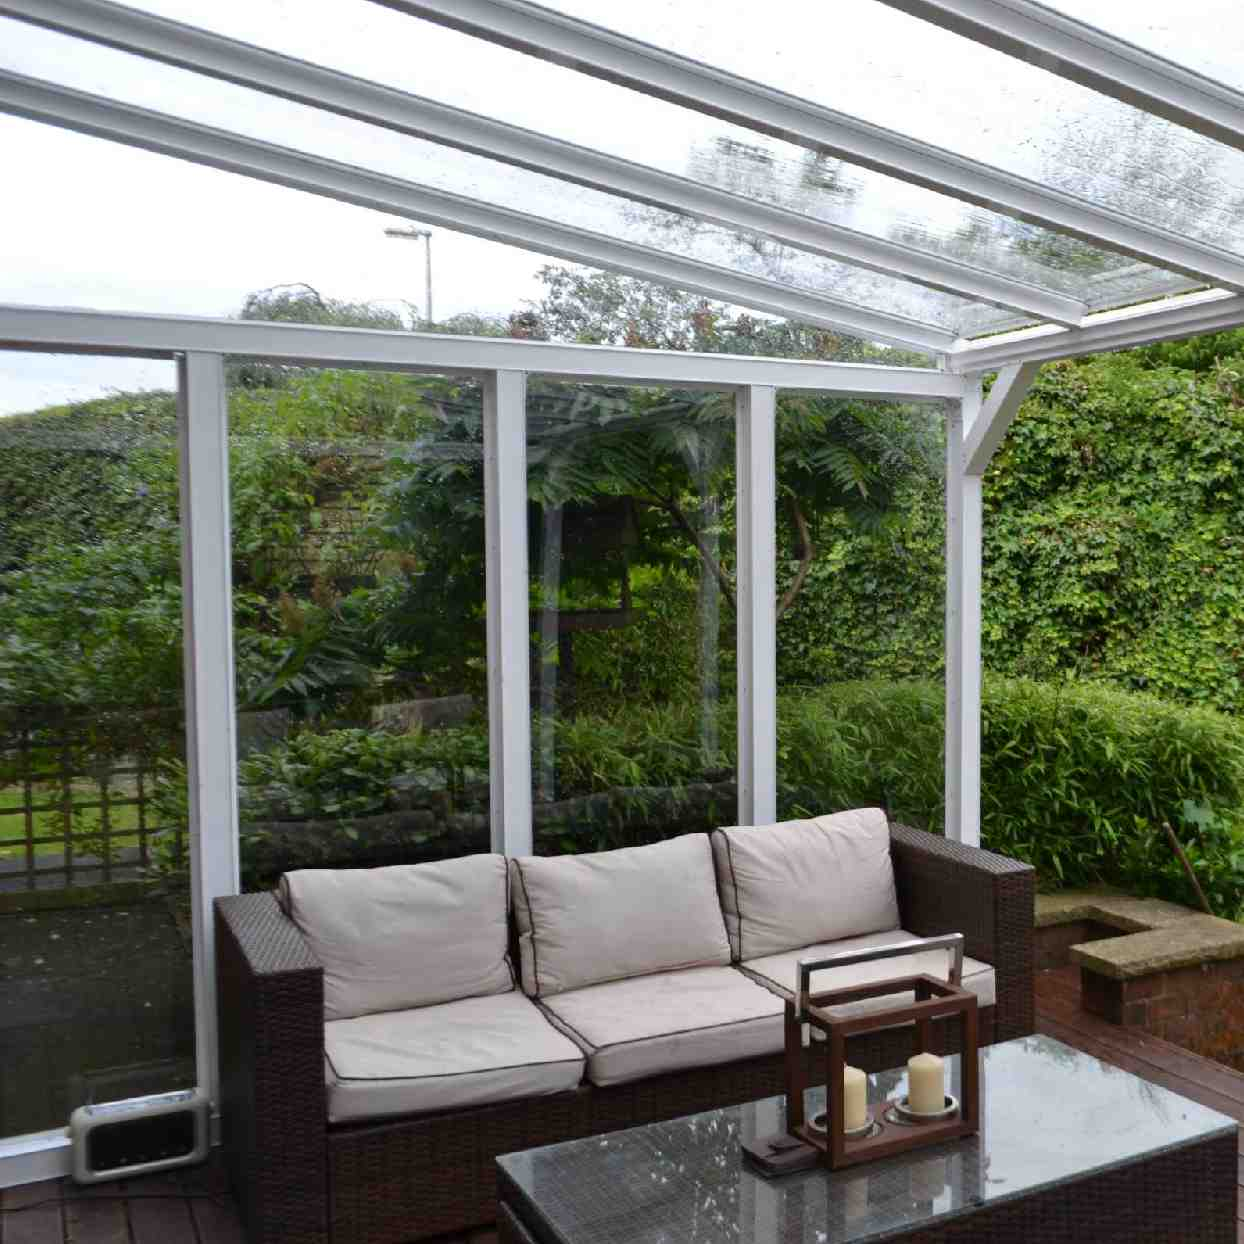 Buy Omega Verandah with 16mm Polycarbonate Glazing - 12.0m (W) x 3.0m (P), (5) Supporting Posts online today